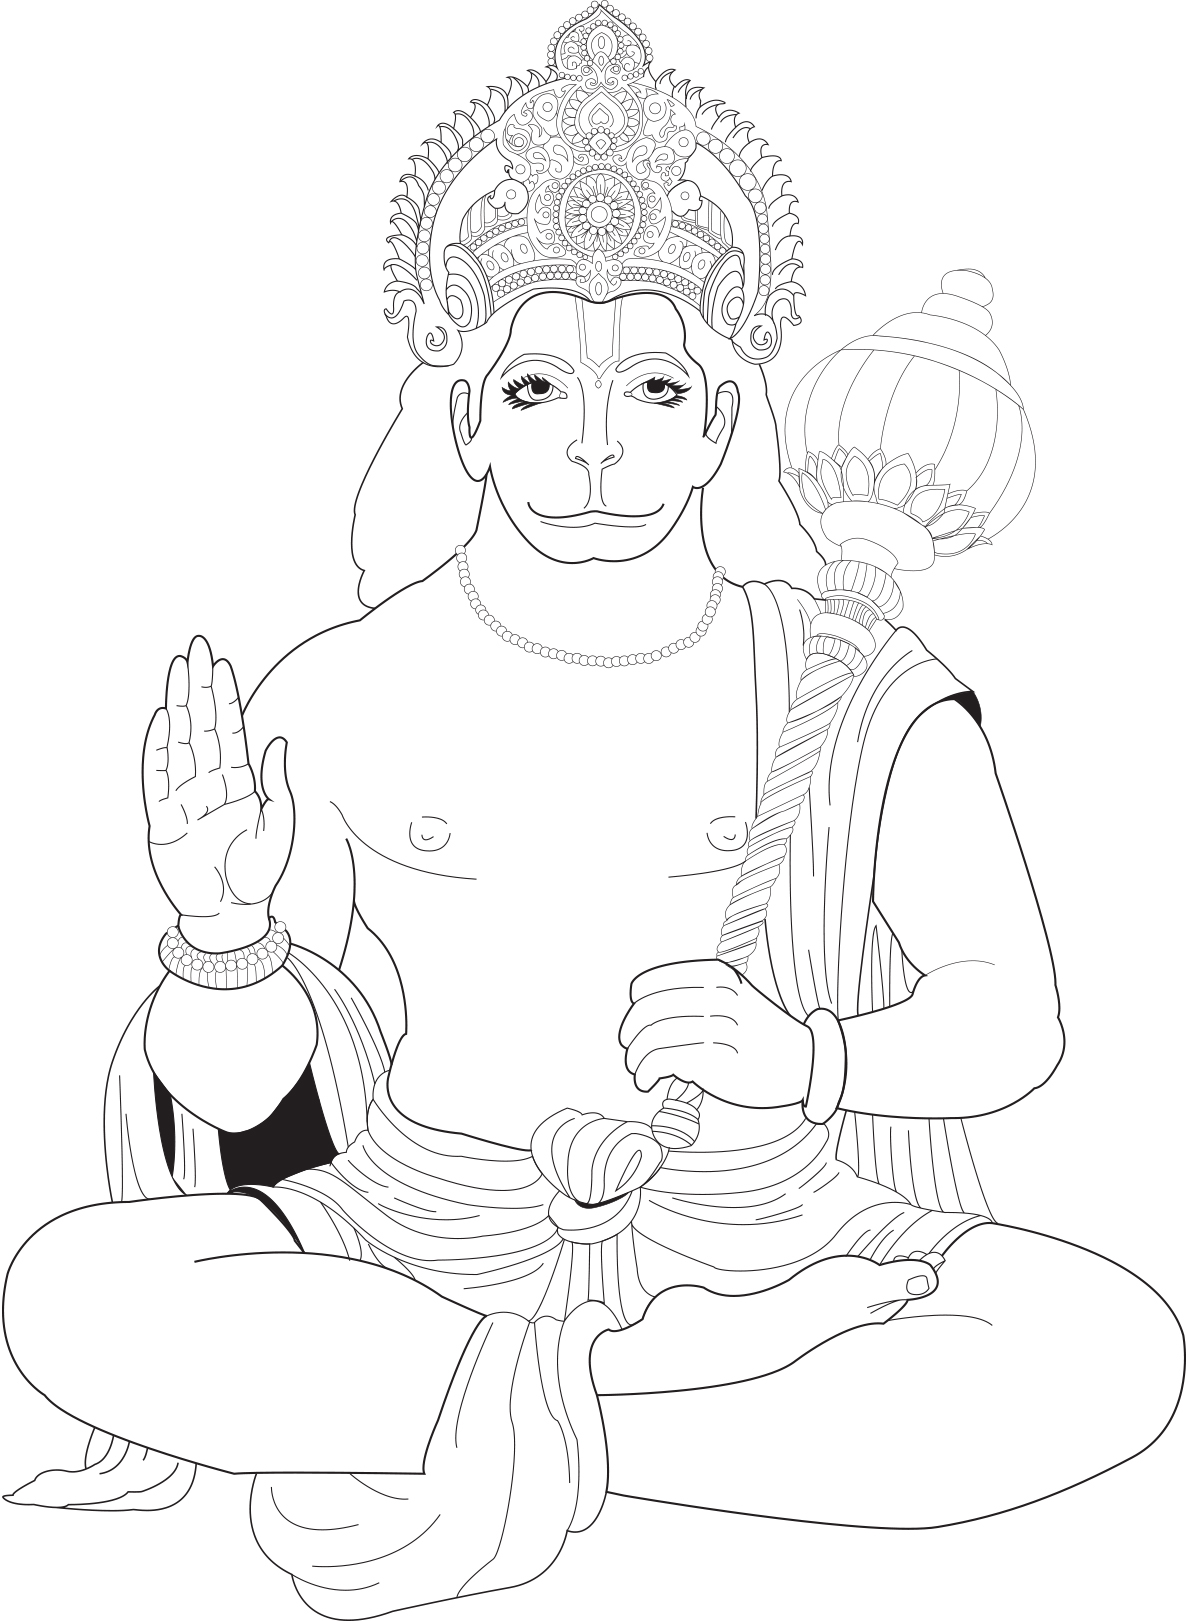 This god Hanuman, is a Vanara, a hero able to metamorphose.